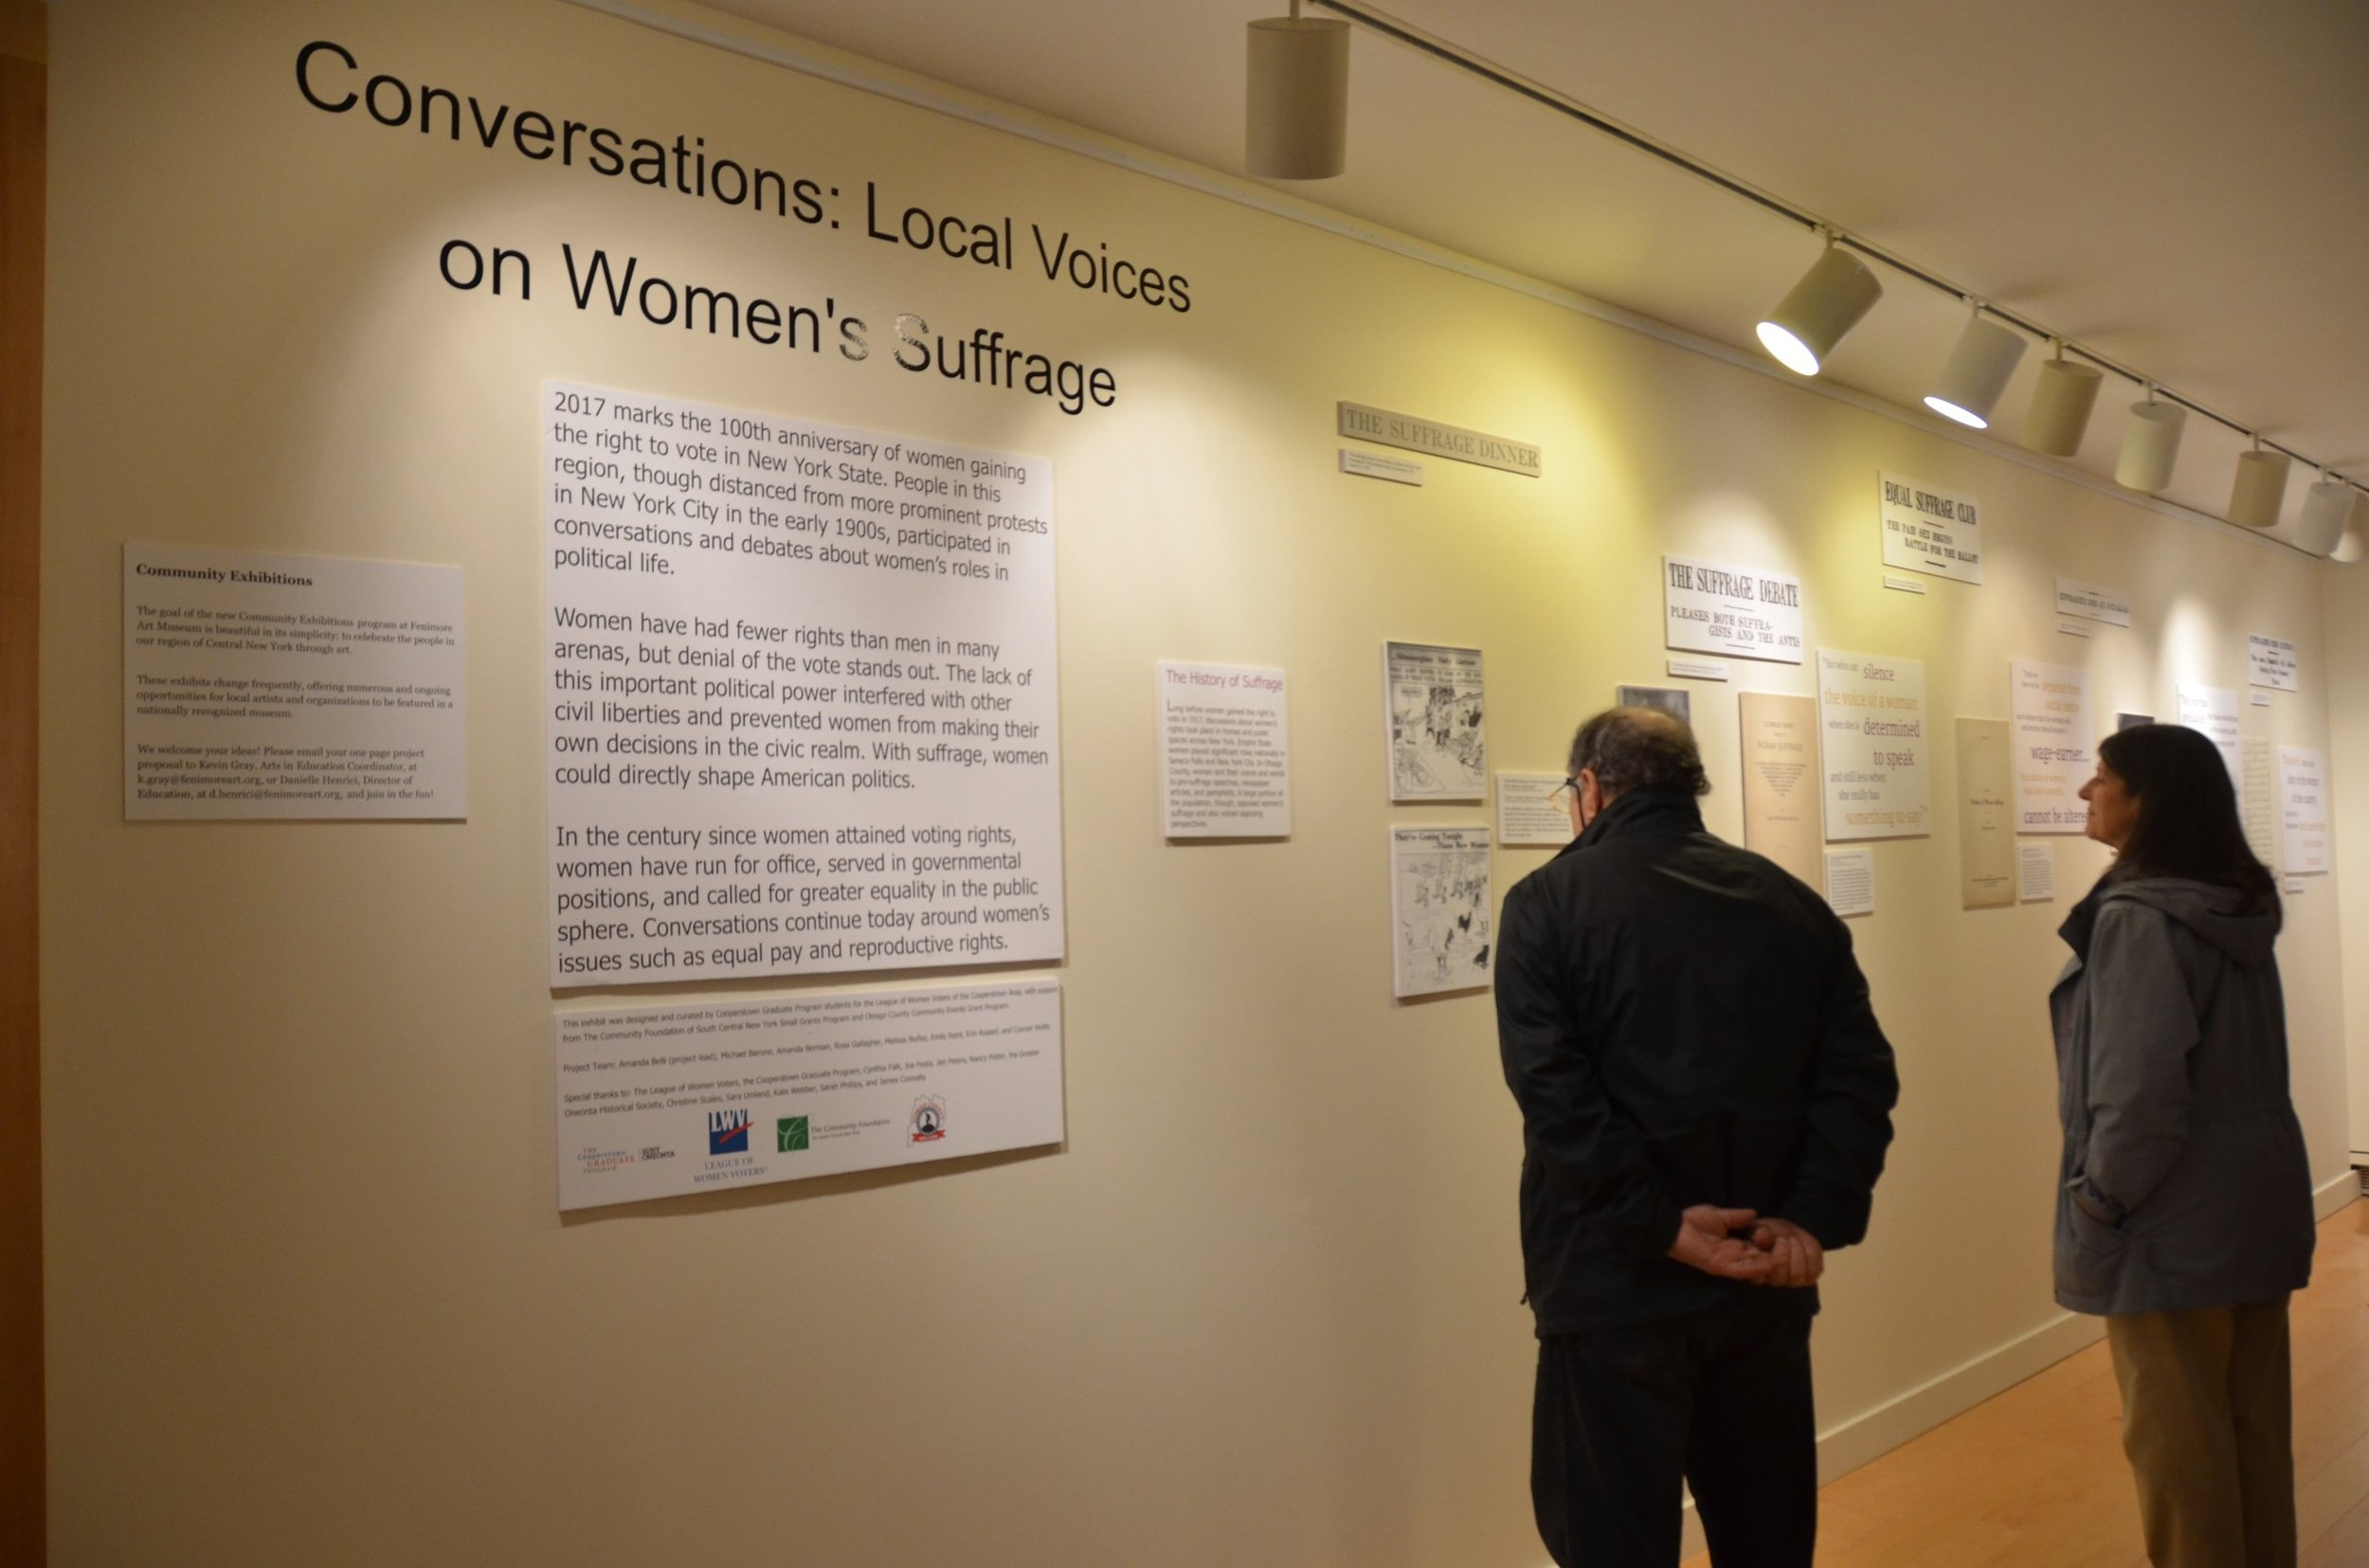 The exhibit on Women's Suffrage created by students in the Cooperstown Graduate Program.